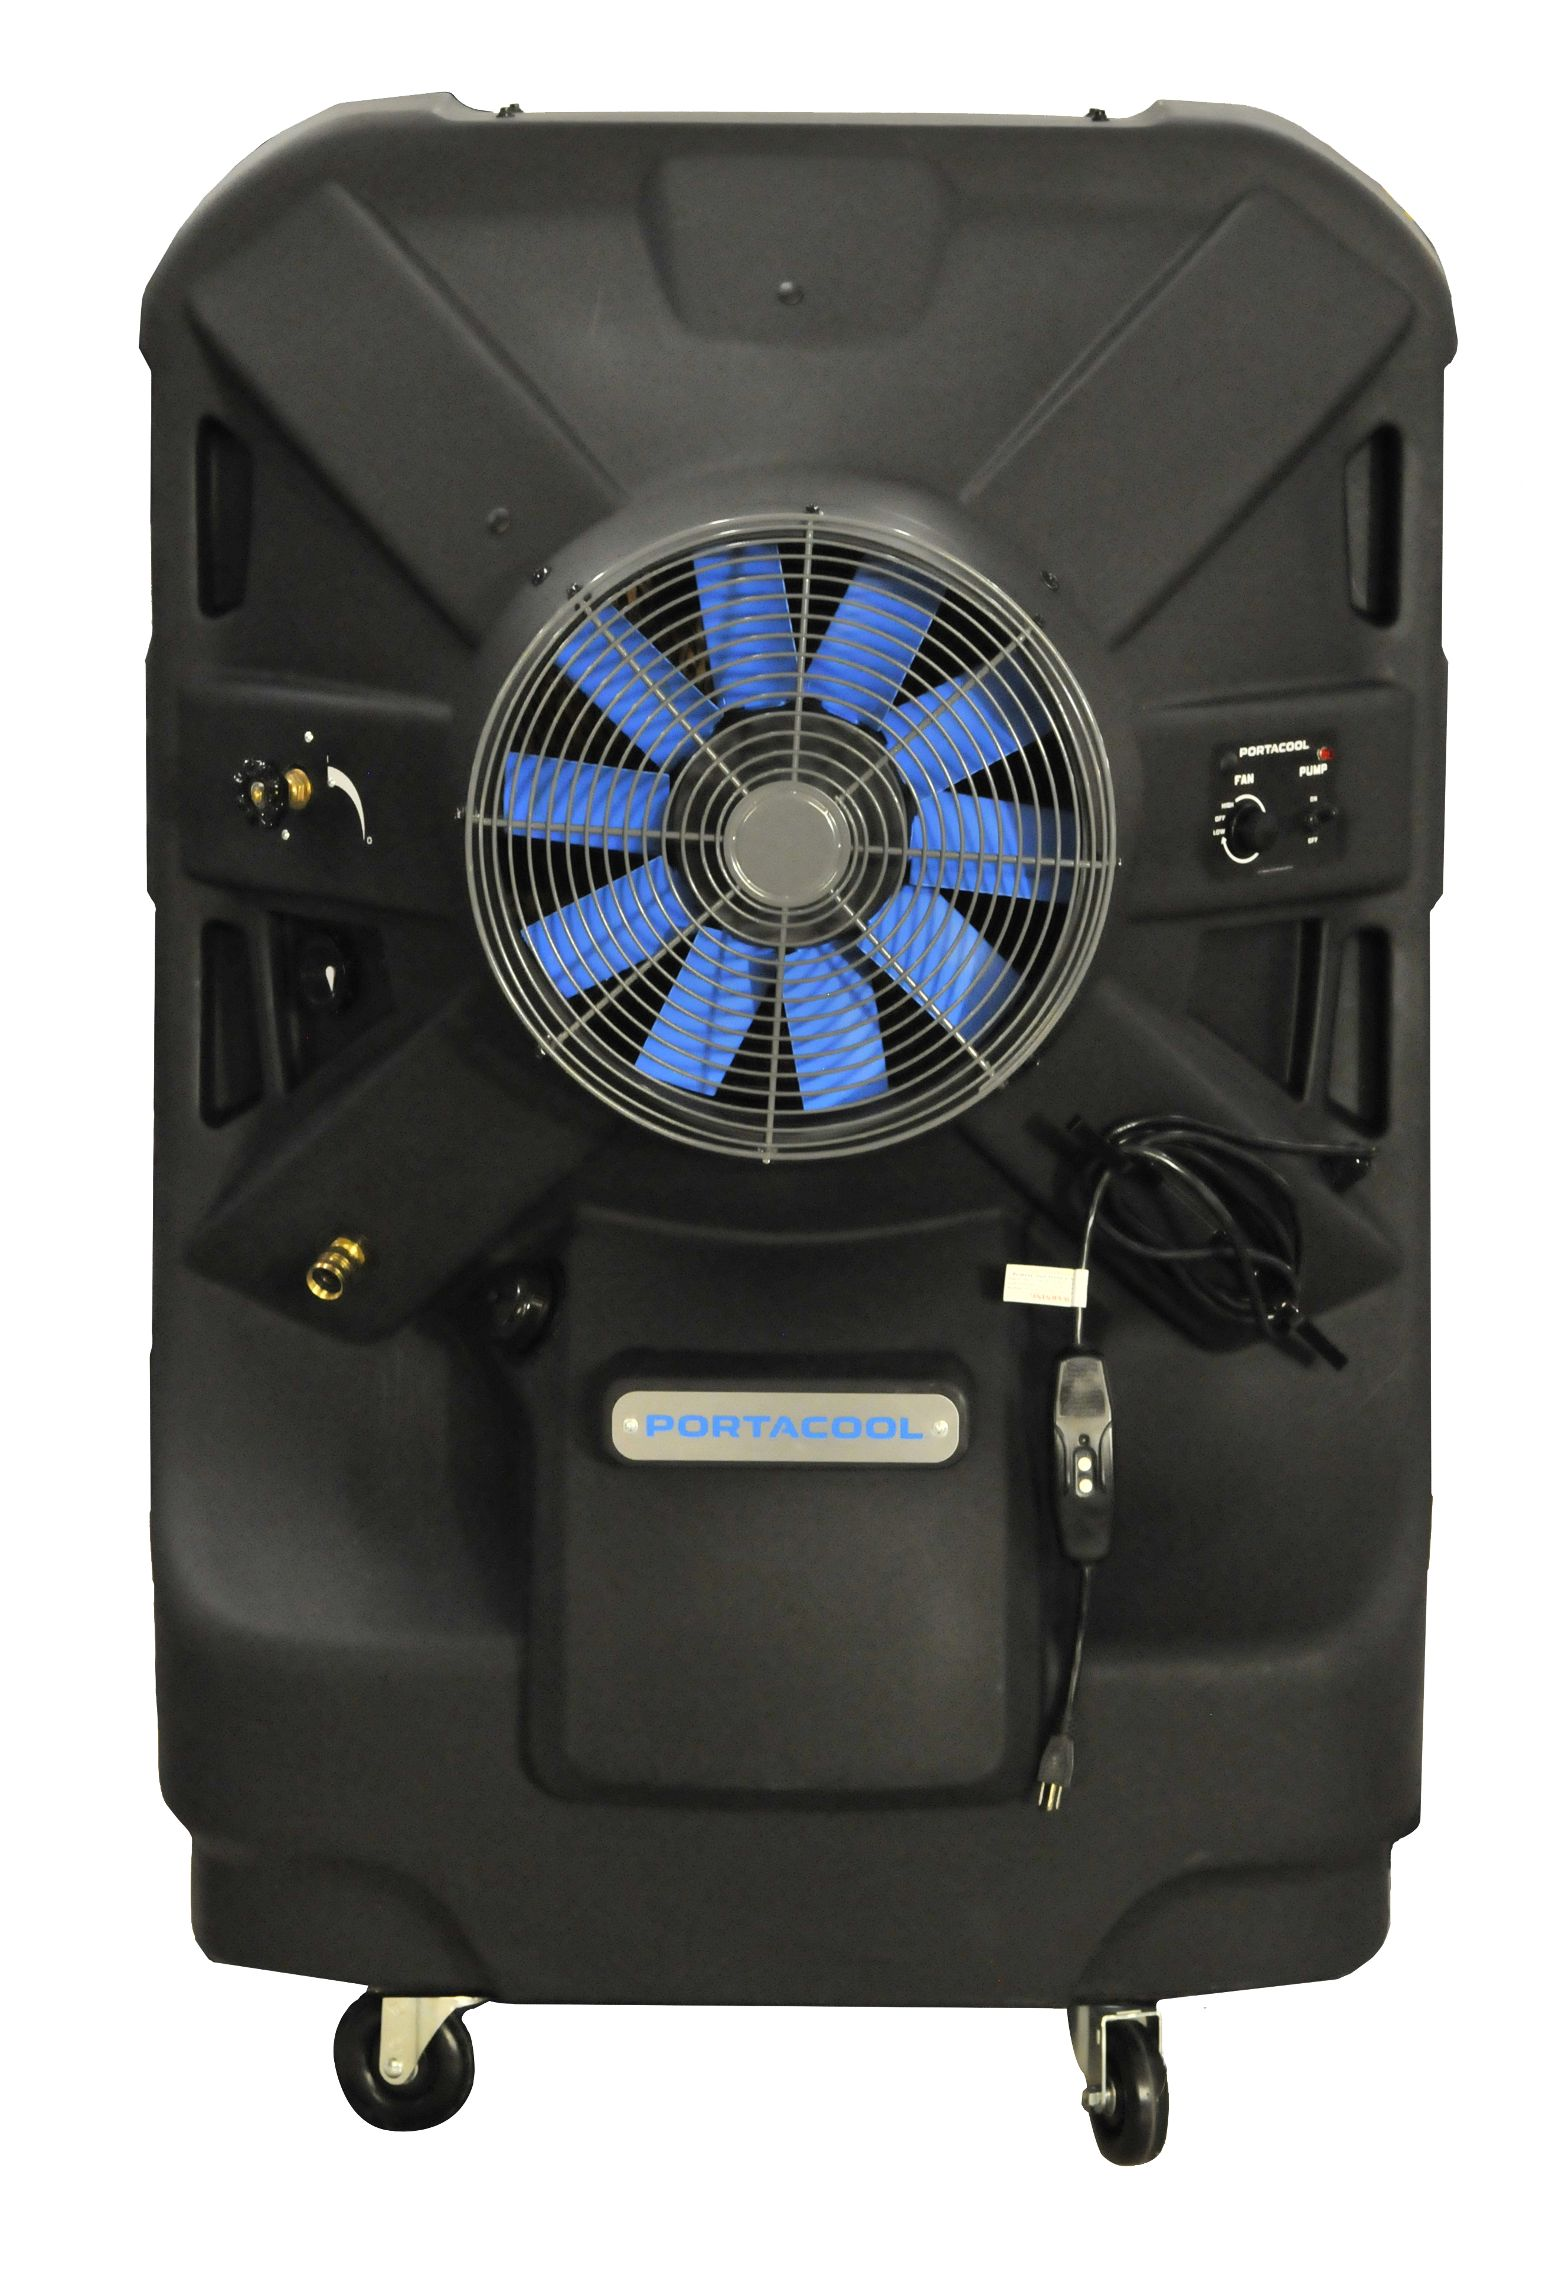 Portacool Jetstream 240 Portable Evaporative Cooler